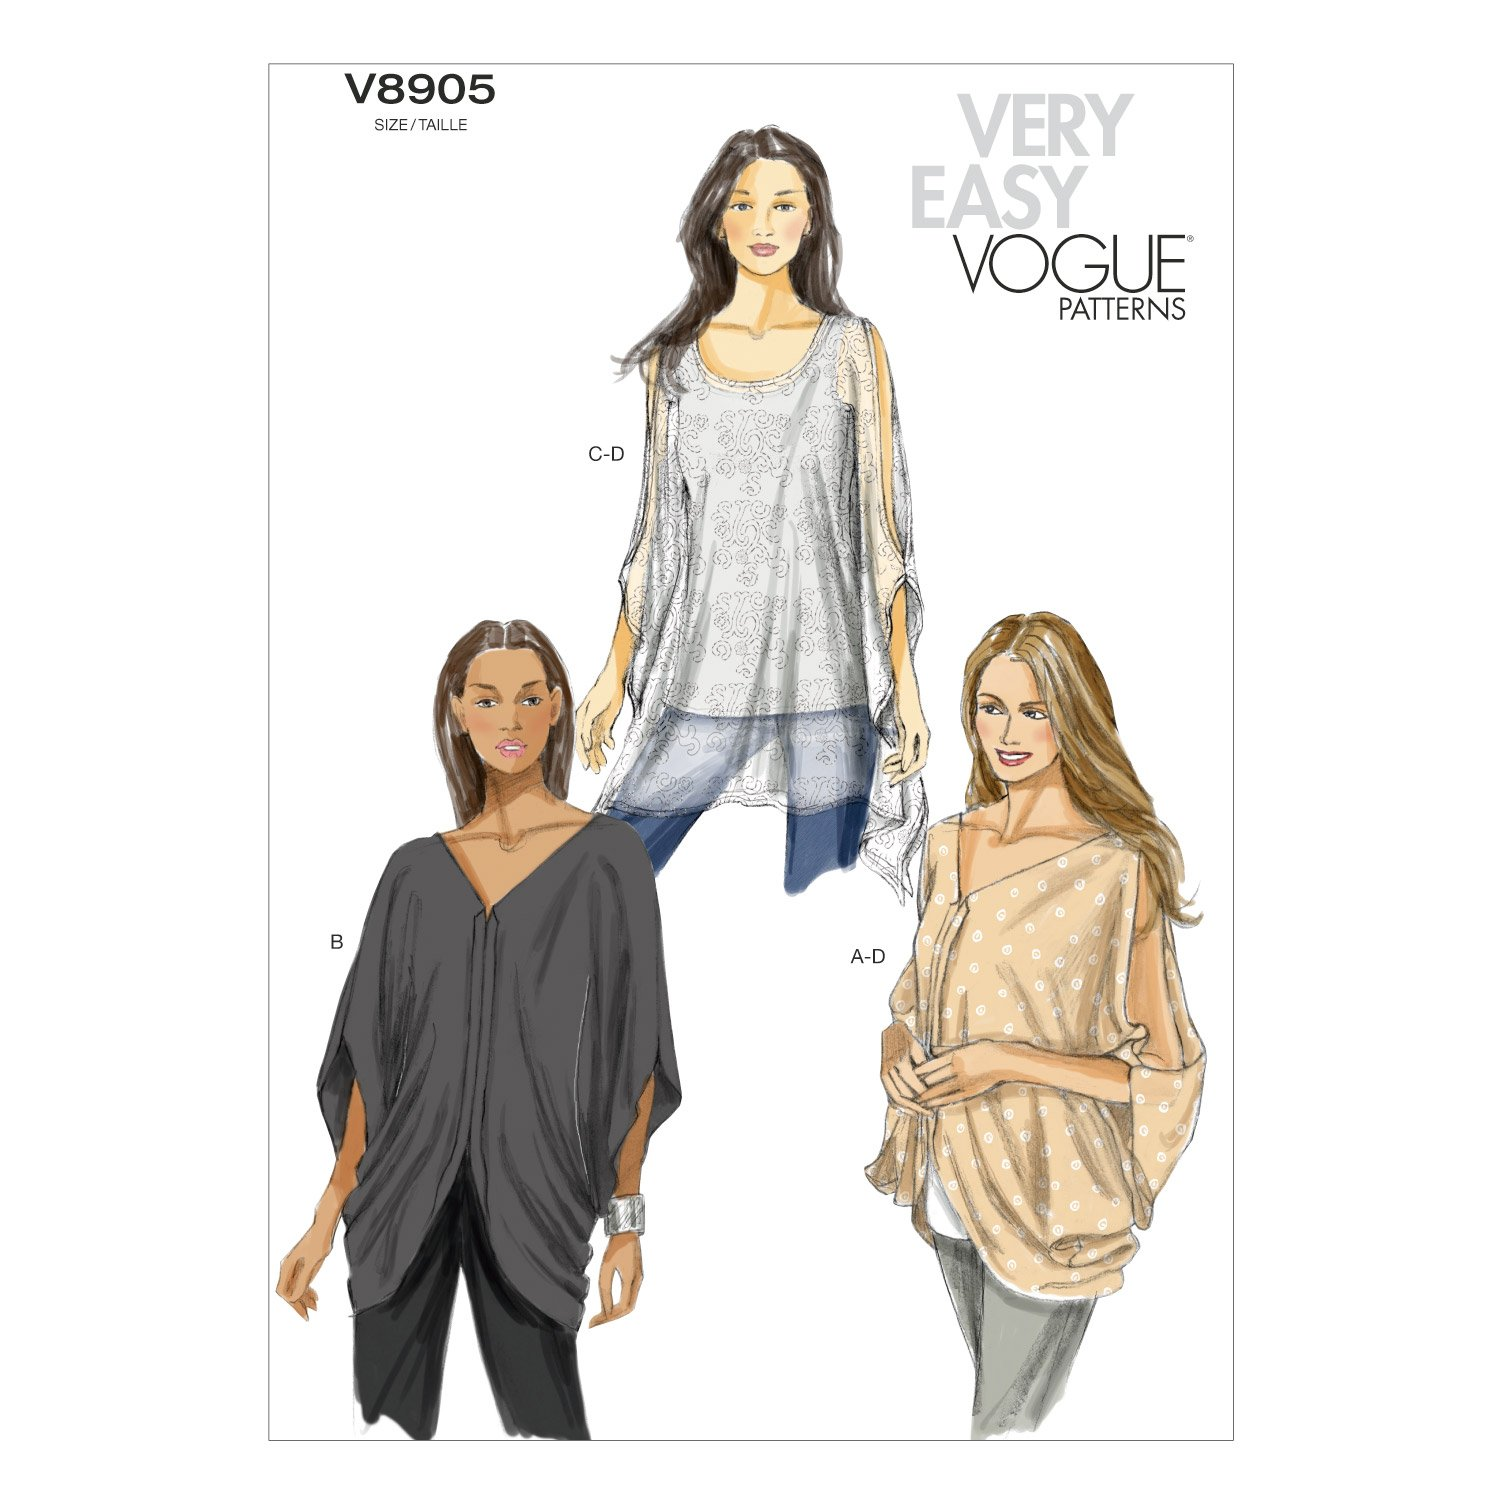 Vogue Patterns V8905 Misses' Top Sewing Template, Size Y (XSM-SML-MED) by Vogue Patterns   B00DG4GRPO